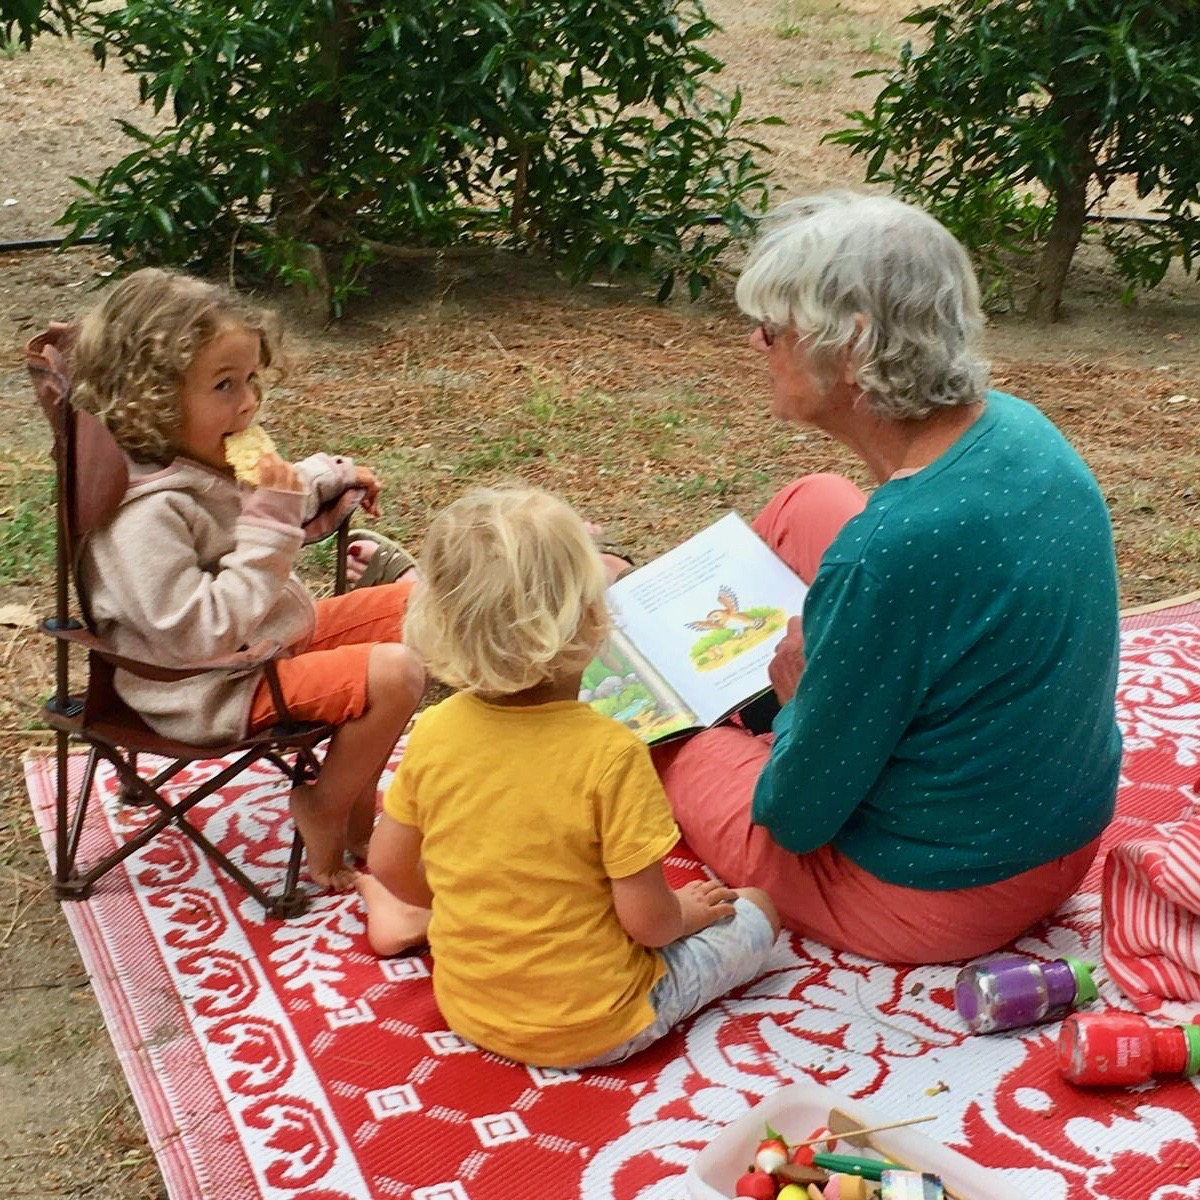 Expedition Family Happiness - Our sweet neighbour Miep reads to our kids!